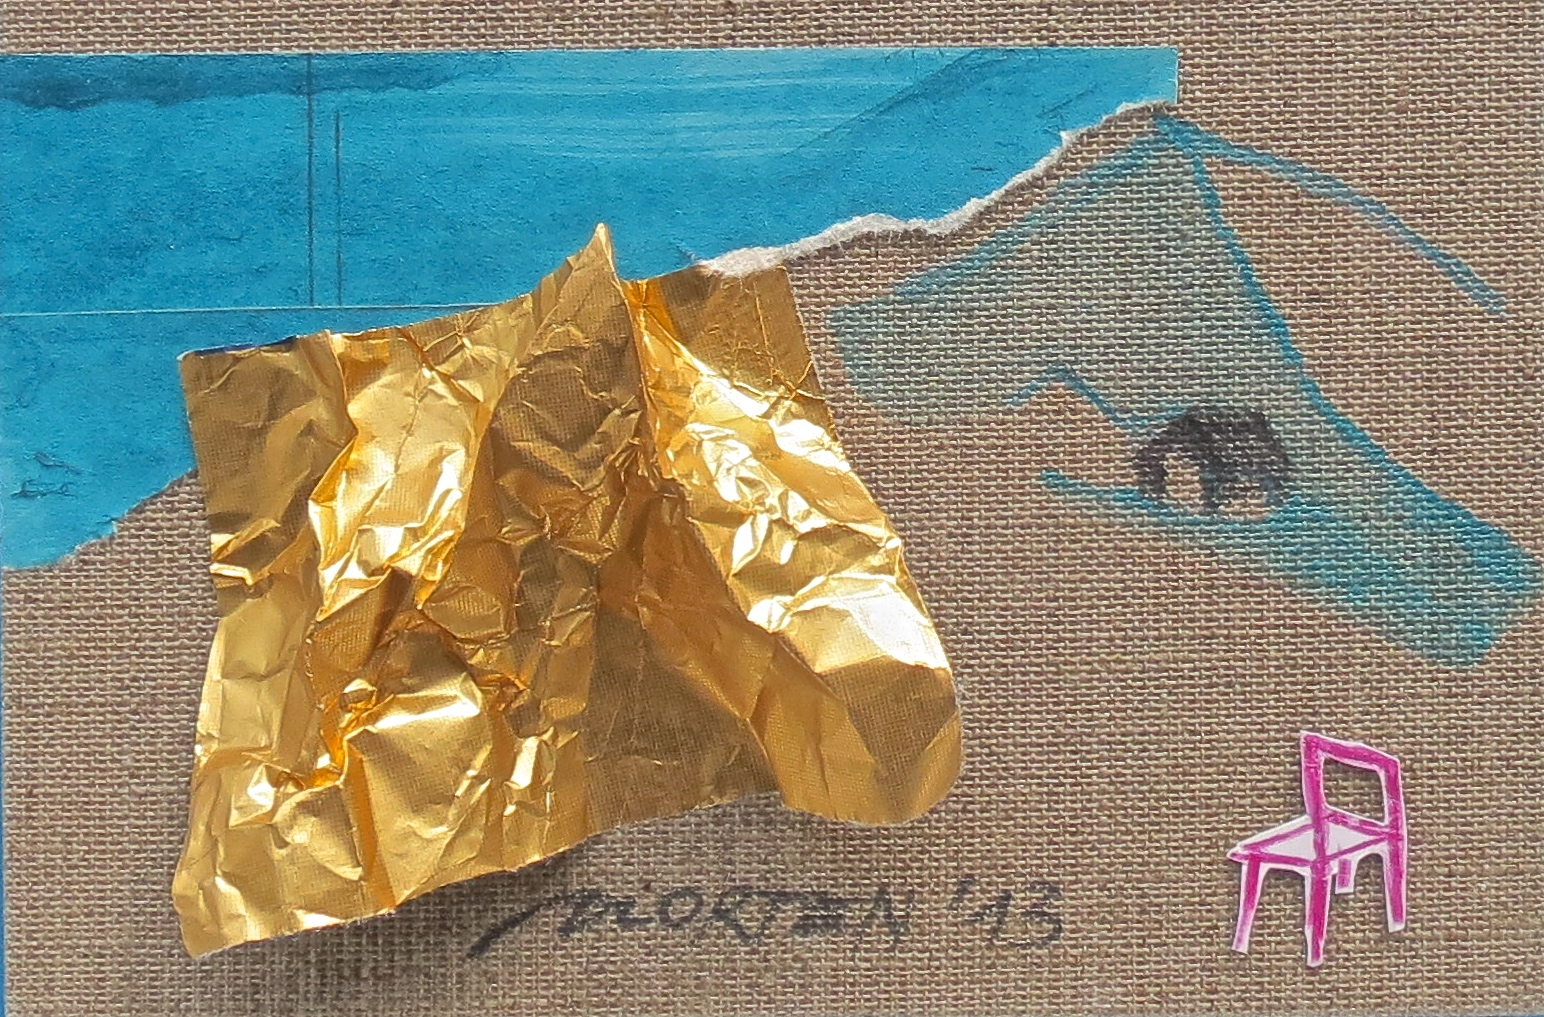 Bergzyklus, Nr. 02, Collage, 2013